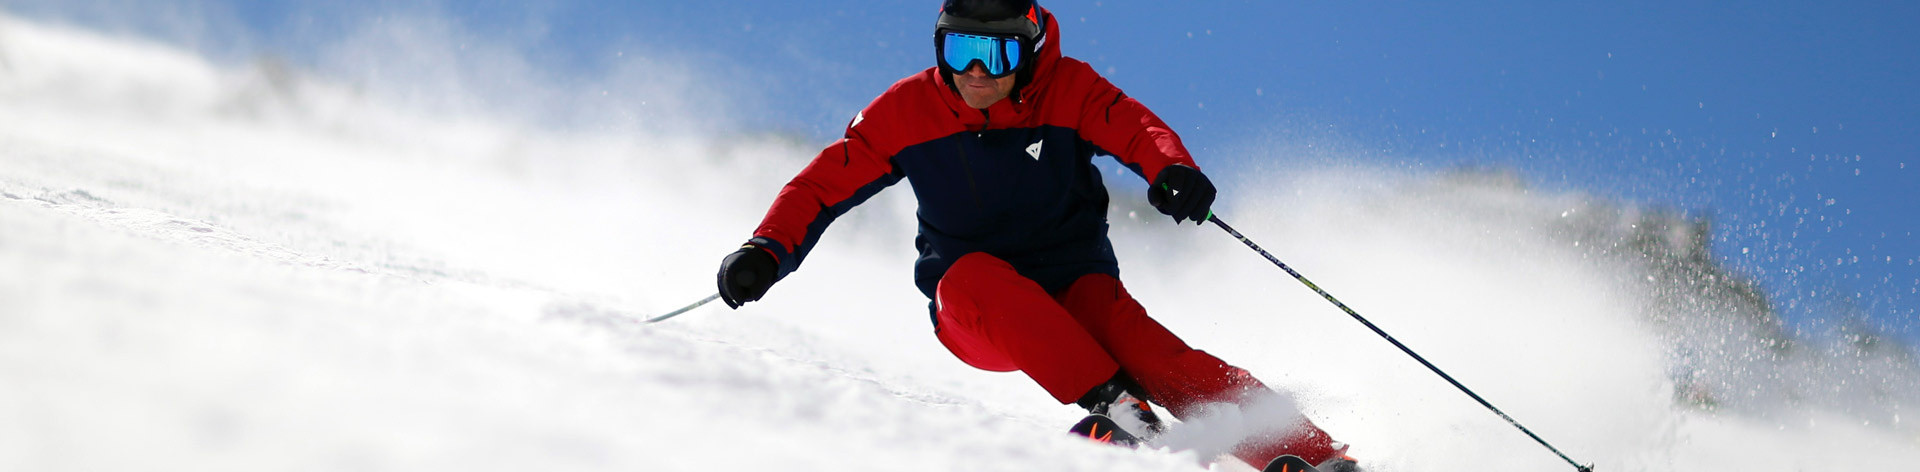 Dainese Winter Jackets for Ski